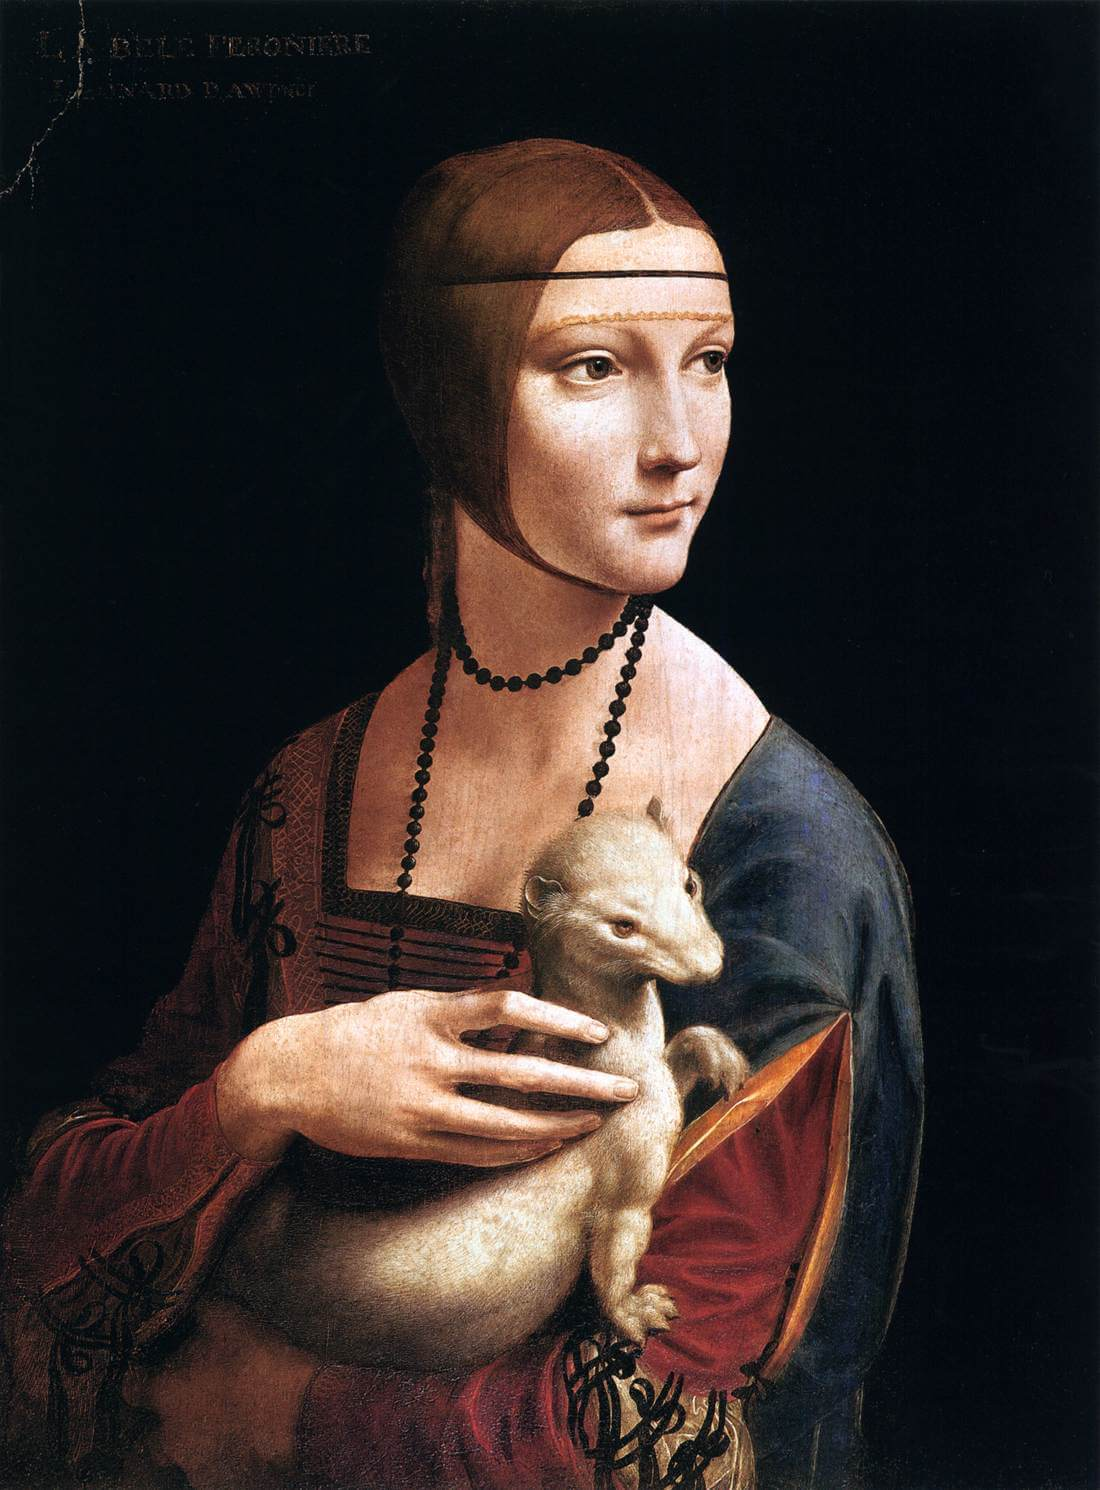 Leonardo da Vinci. Lady with an ermine